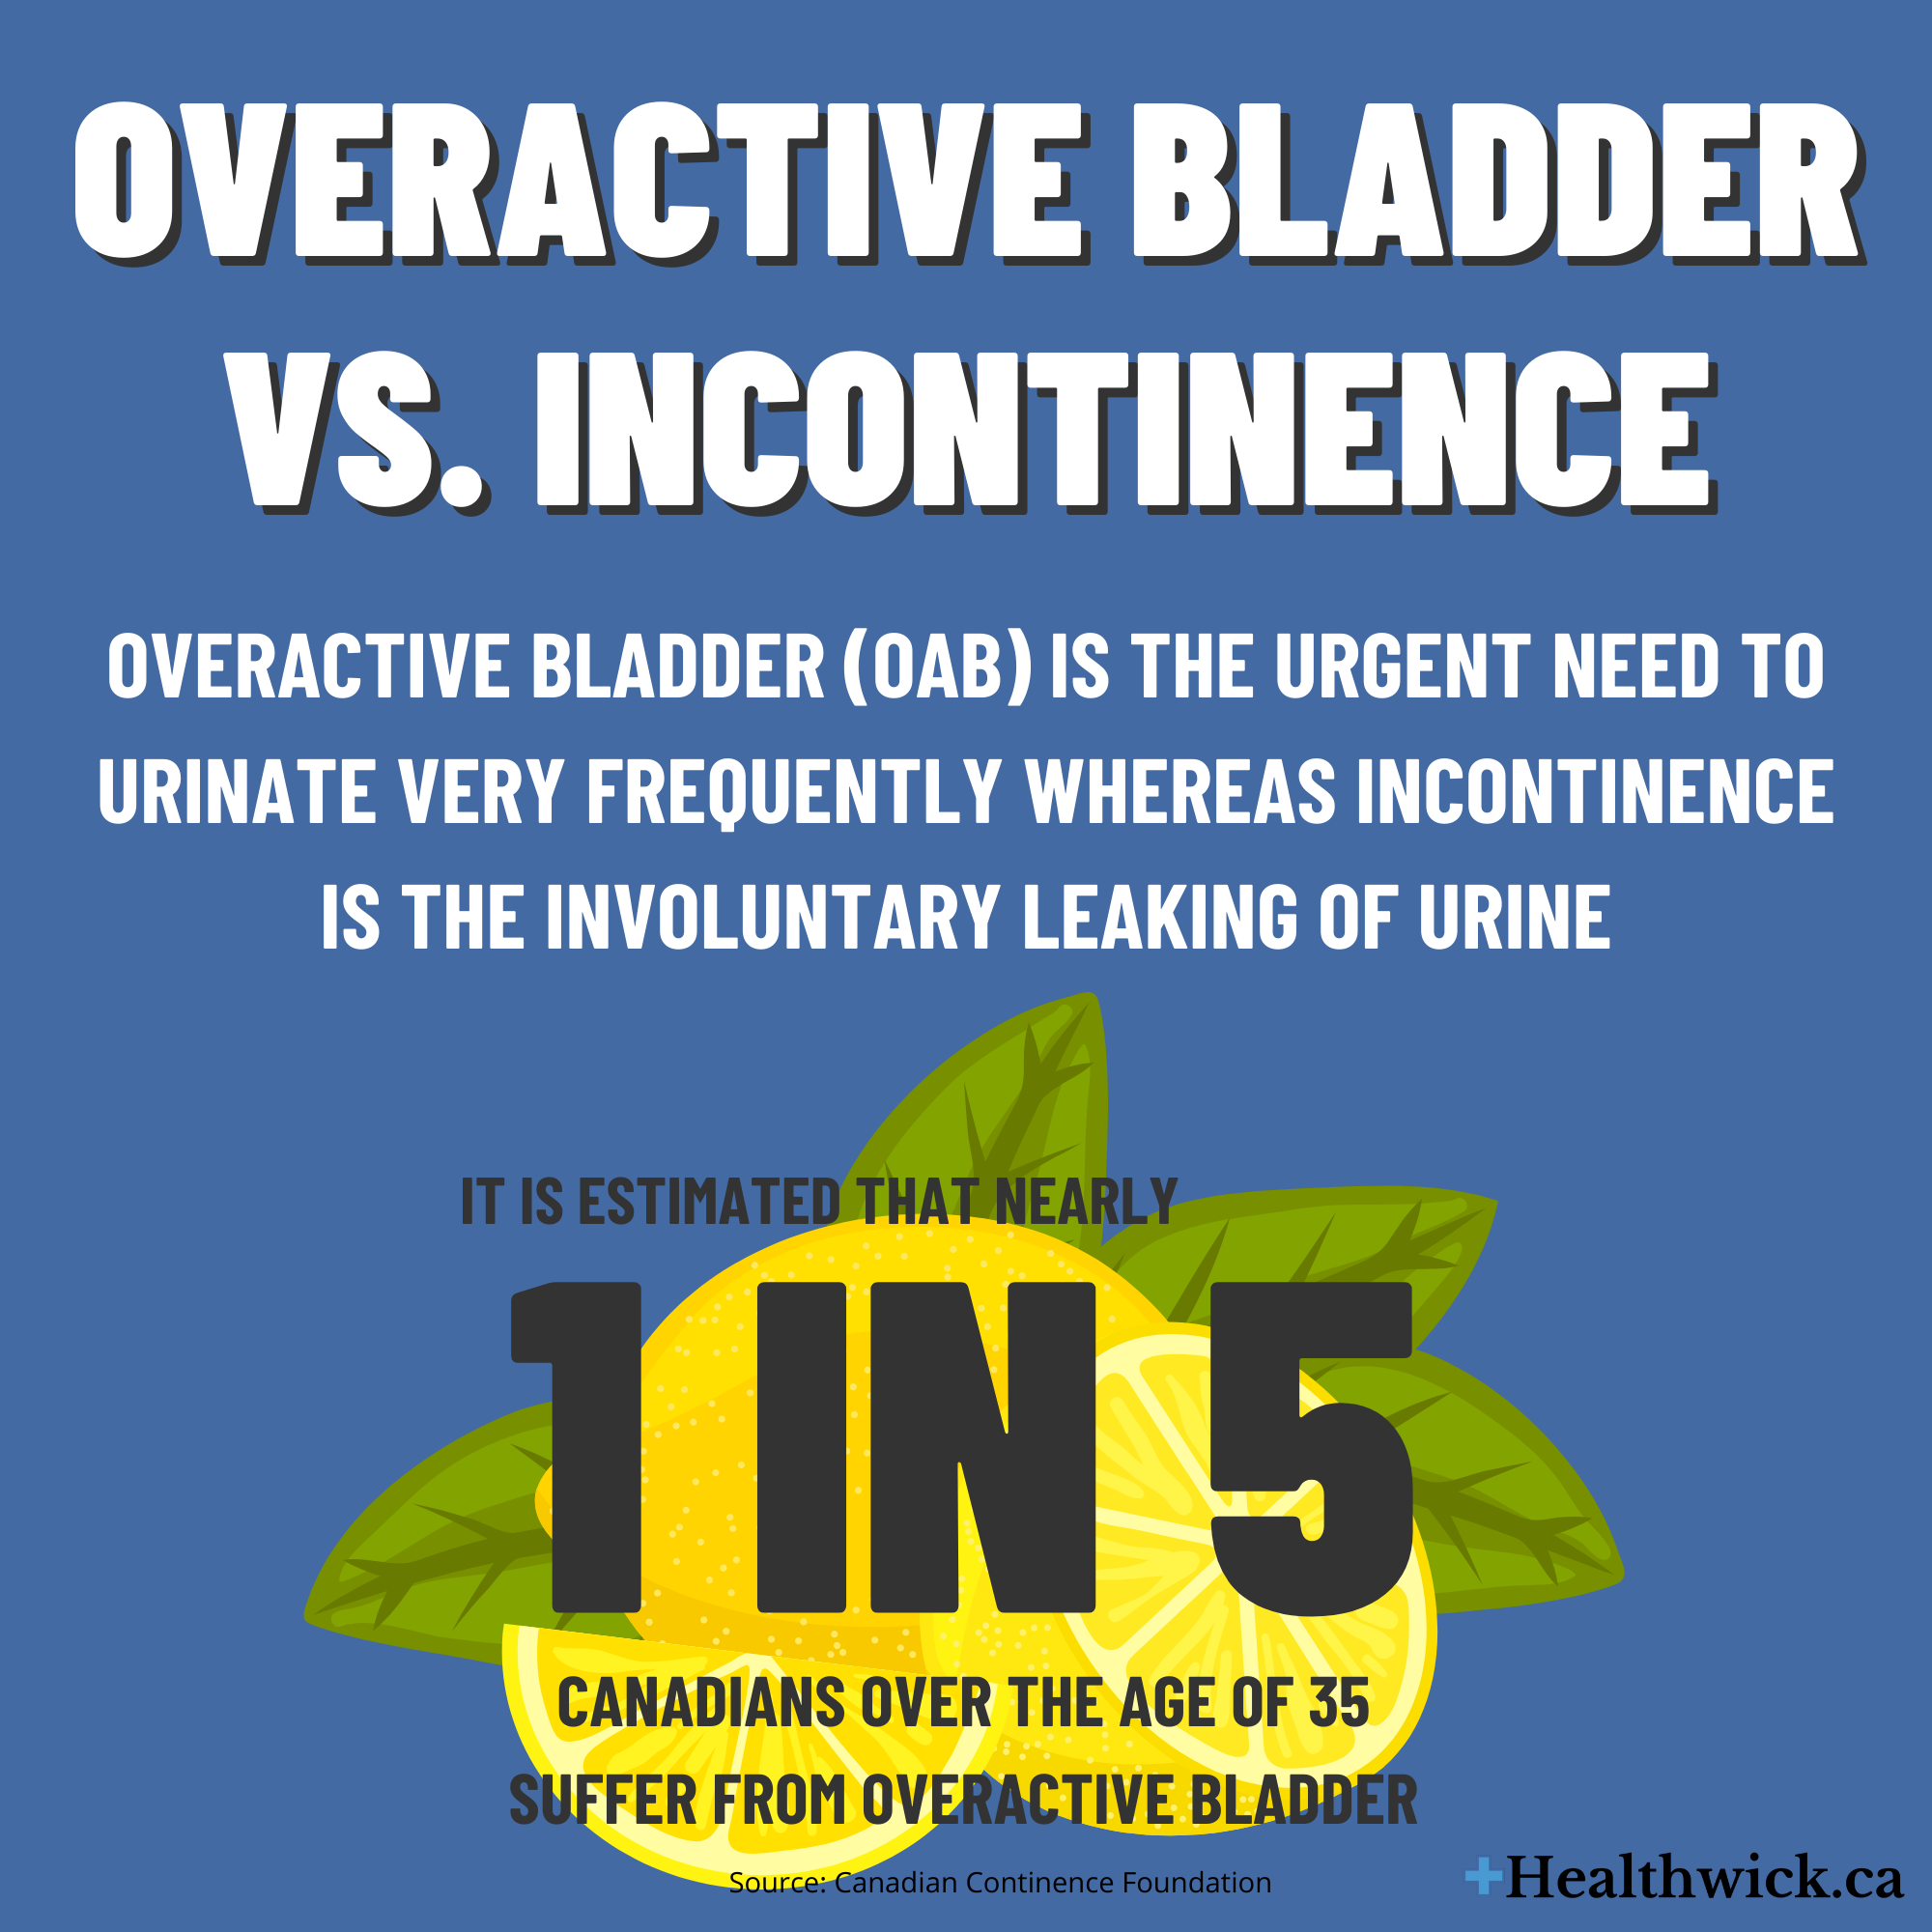 OAB and Incontinence